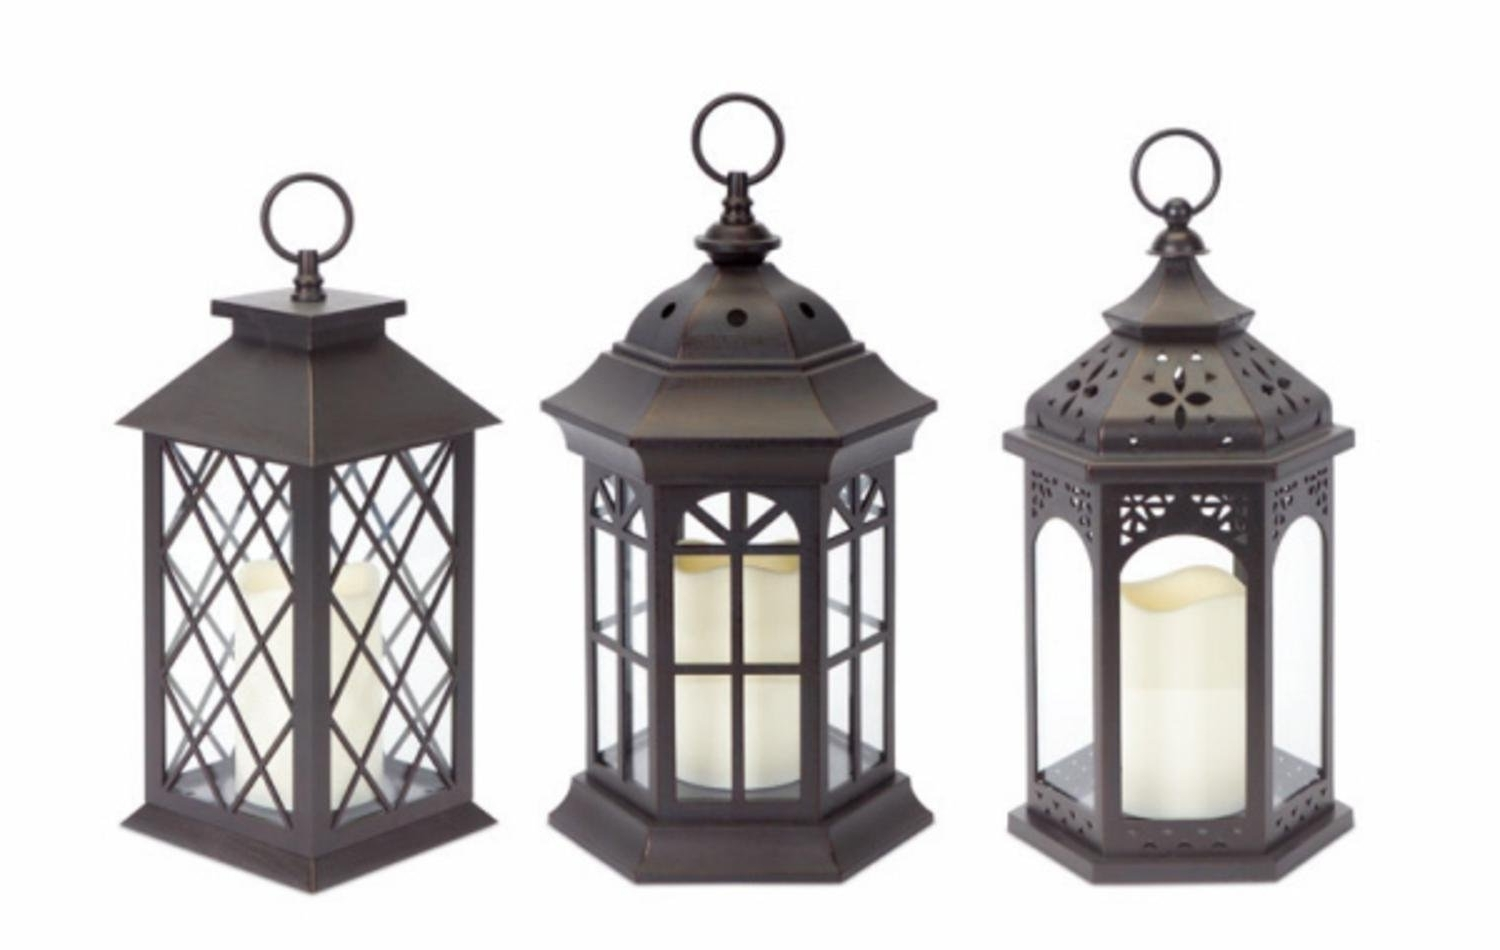 Famous Cheap Outdoor Lanterns Candle, Find Outdoor Lanterns Candle Deals On Regarding Outdoor Lanterns With Timers (View 3 of 20)